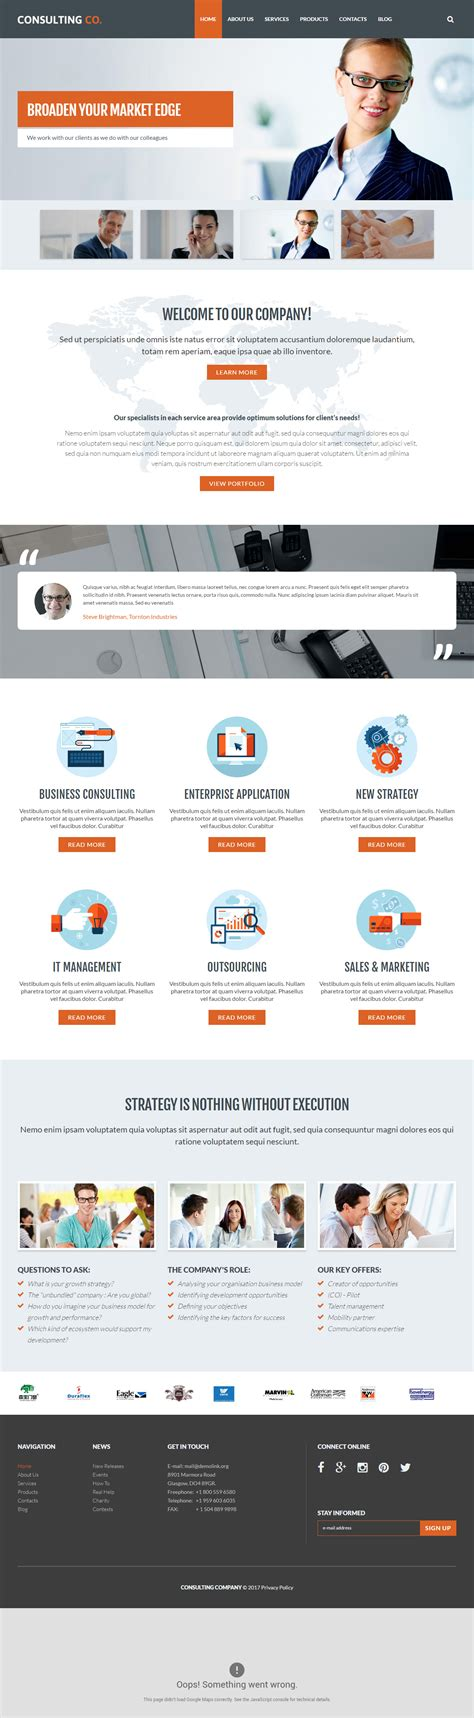 Drupal Themes Responsive Premium | consulting co premium responsive business drupal theme